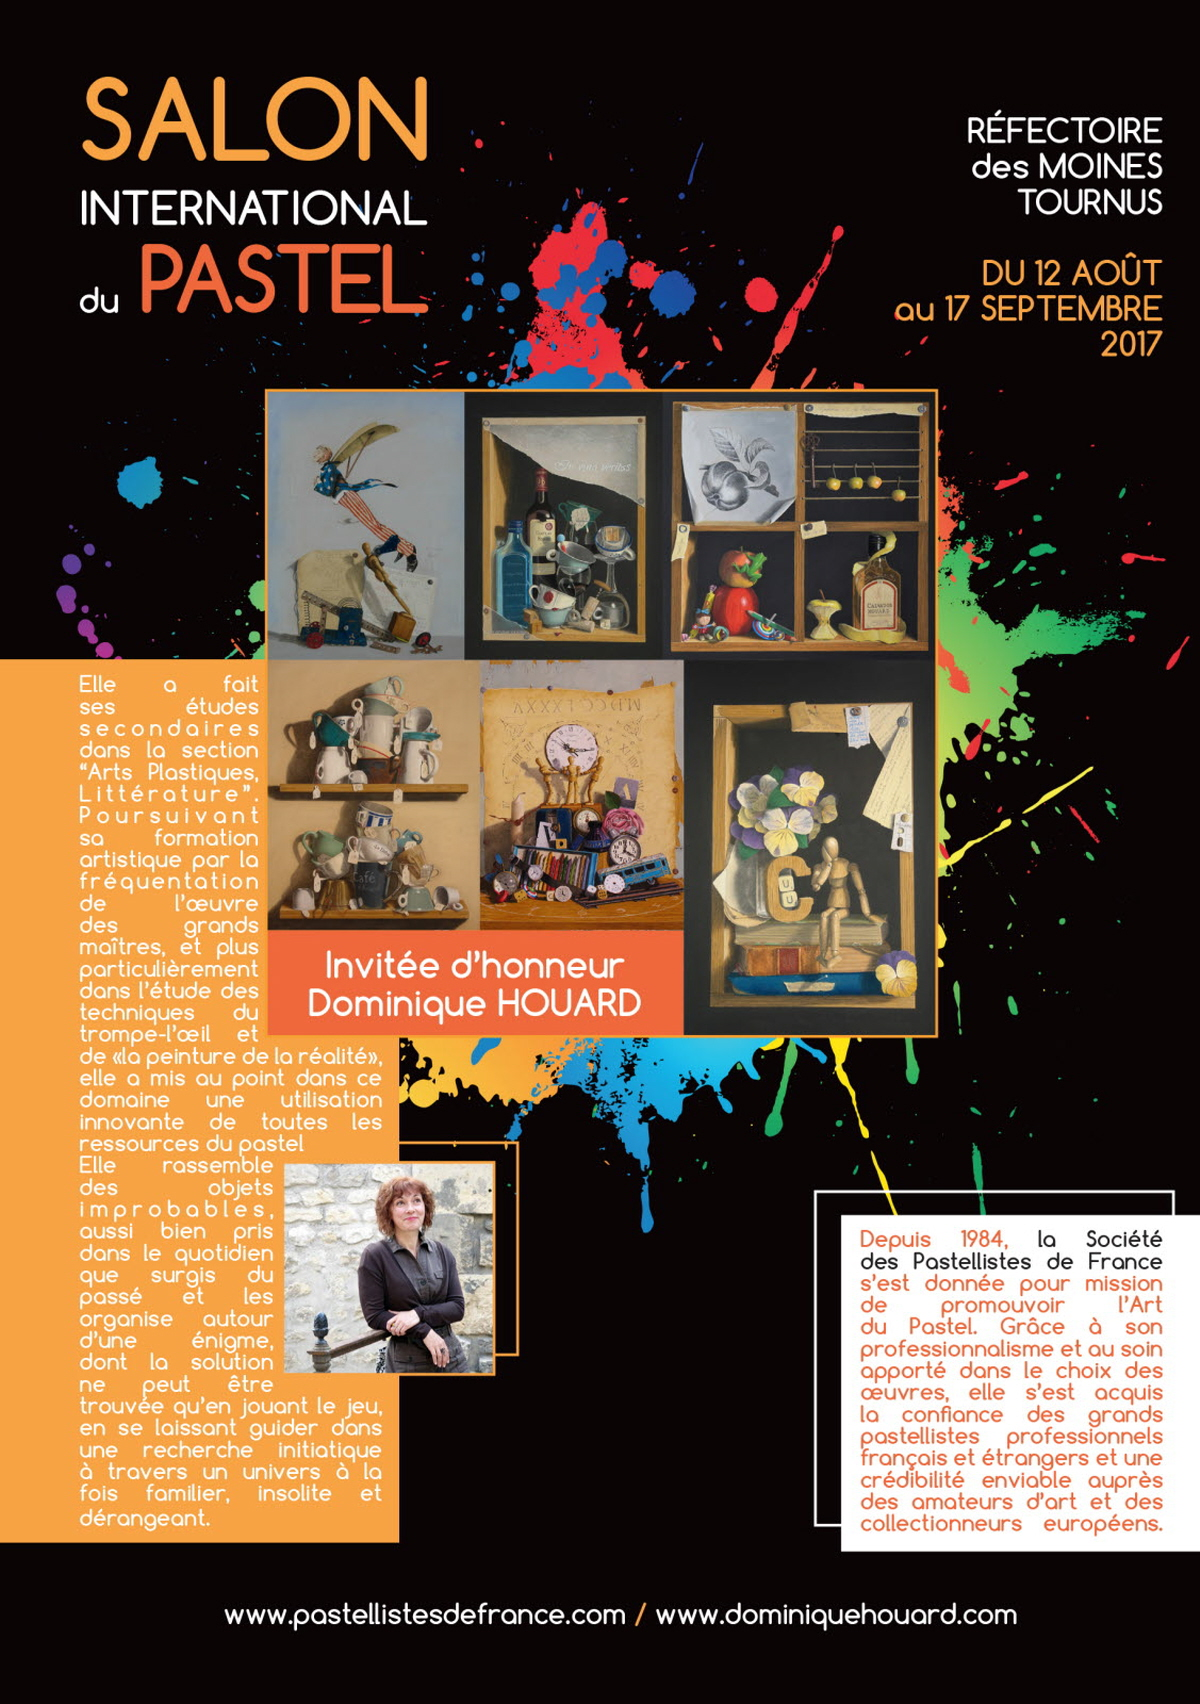 Salon International du Pastel